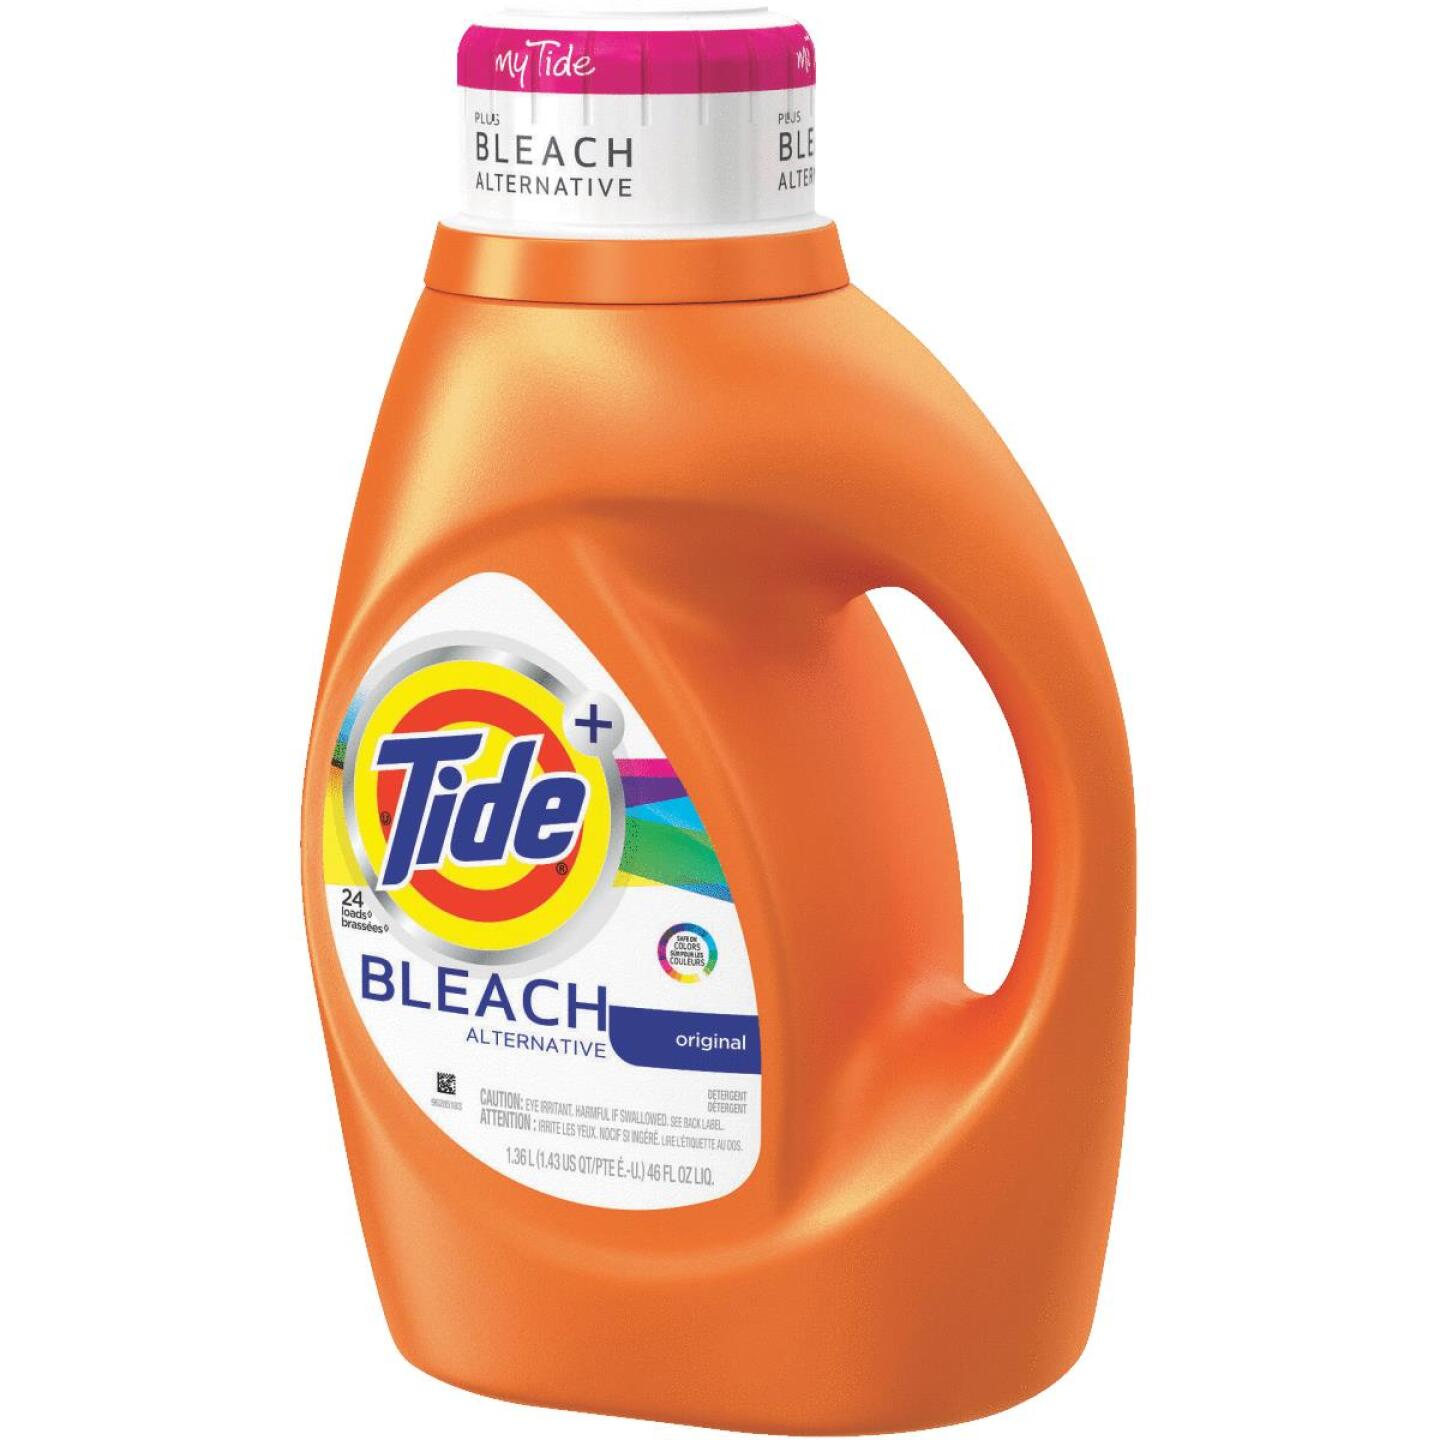 Tide+ 46 Oz. 24 Load Bleach Alternative 2X Liquid Laundry Detergent Image 1